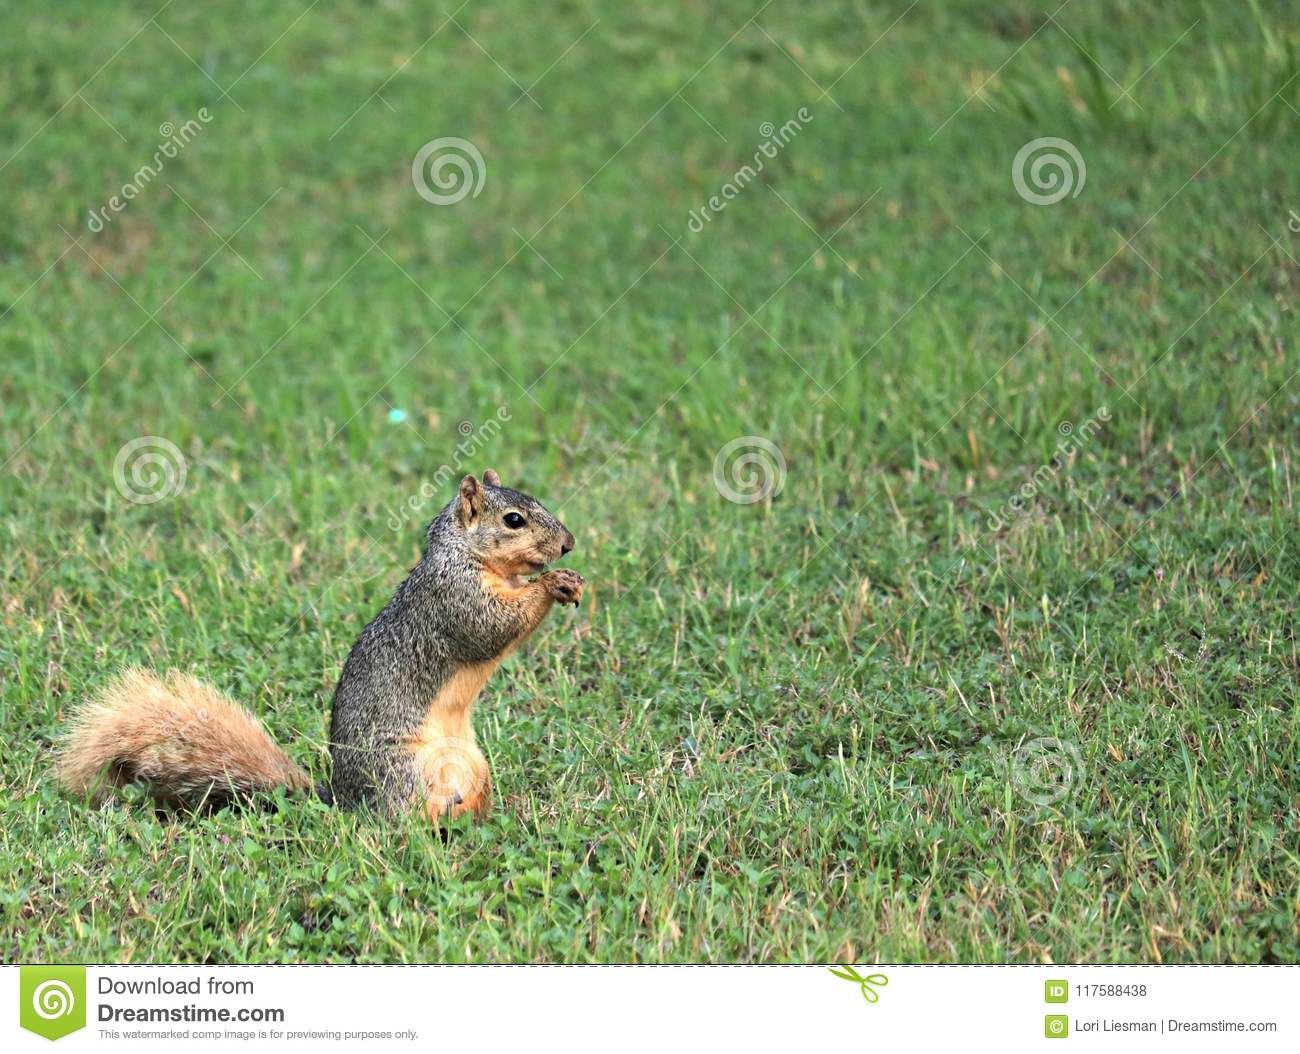 A fox squirrel standing on its hind legs eating a nut it found while foraging.